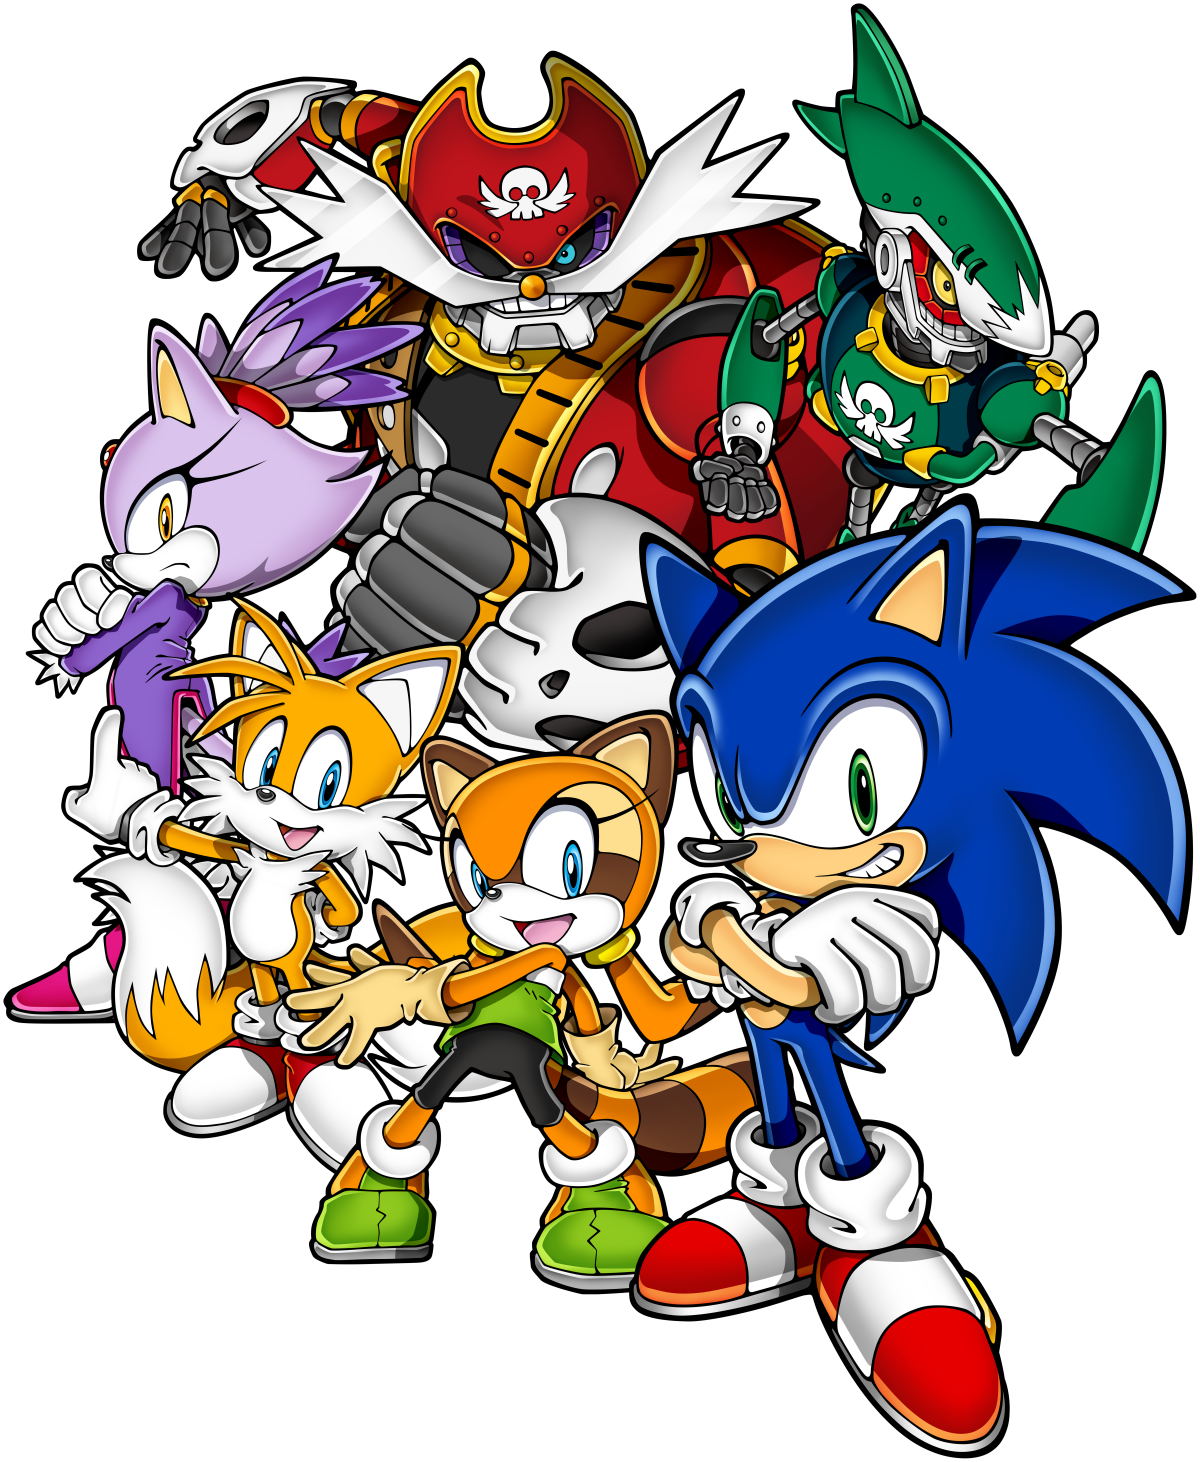 Image 831670 Sonic The Hedgehog Know Your Meme